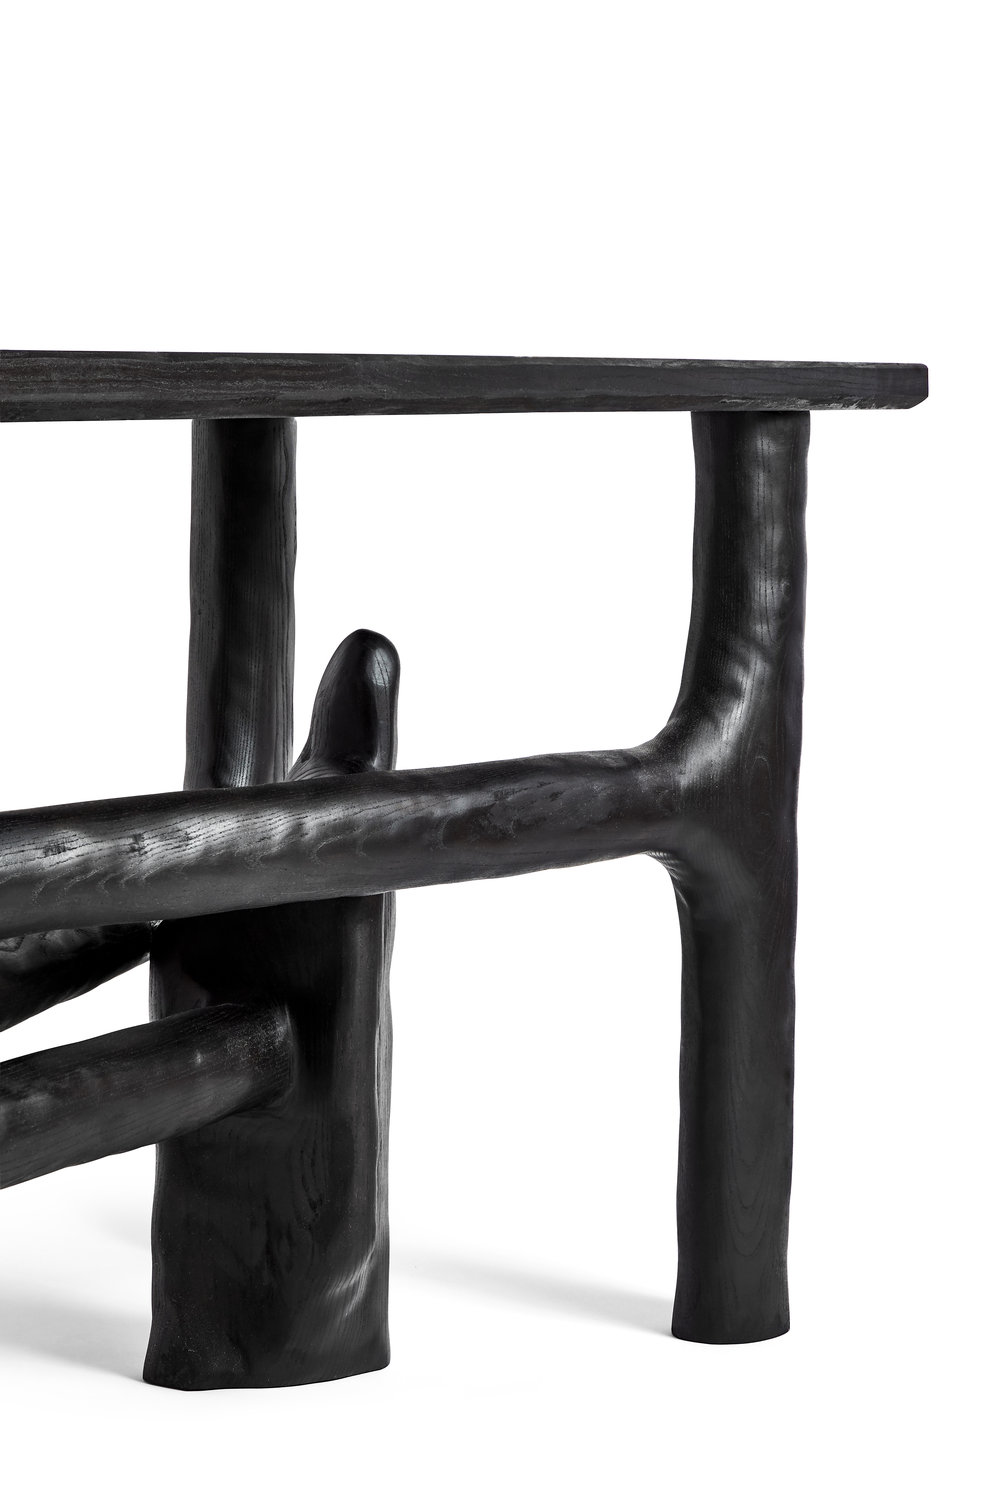 SCULPTURE 006 IN CHARRED BLACK FINISH (4).jpg